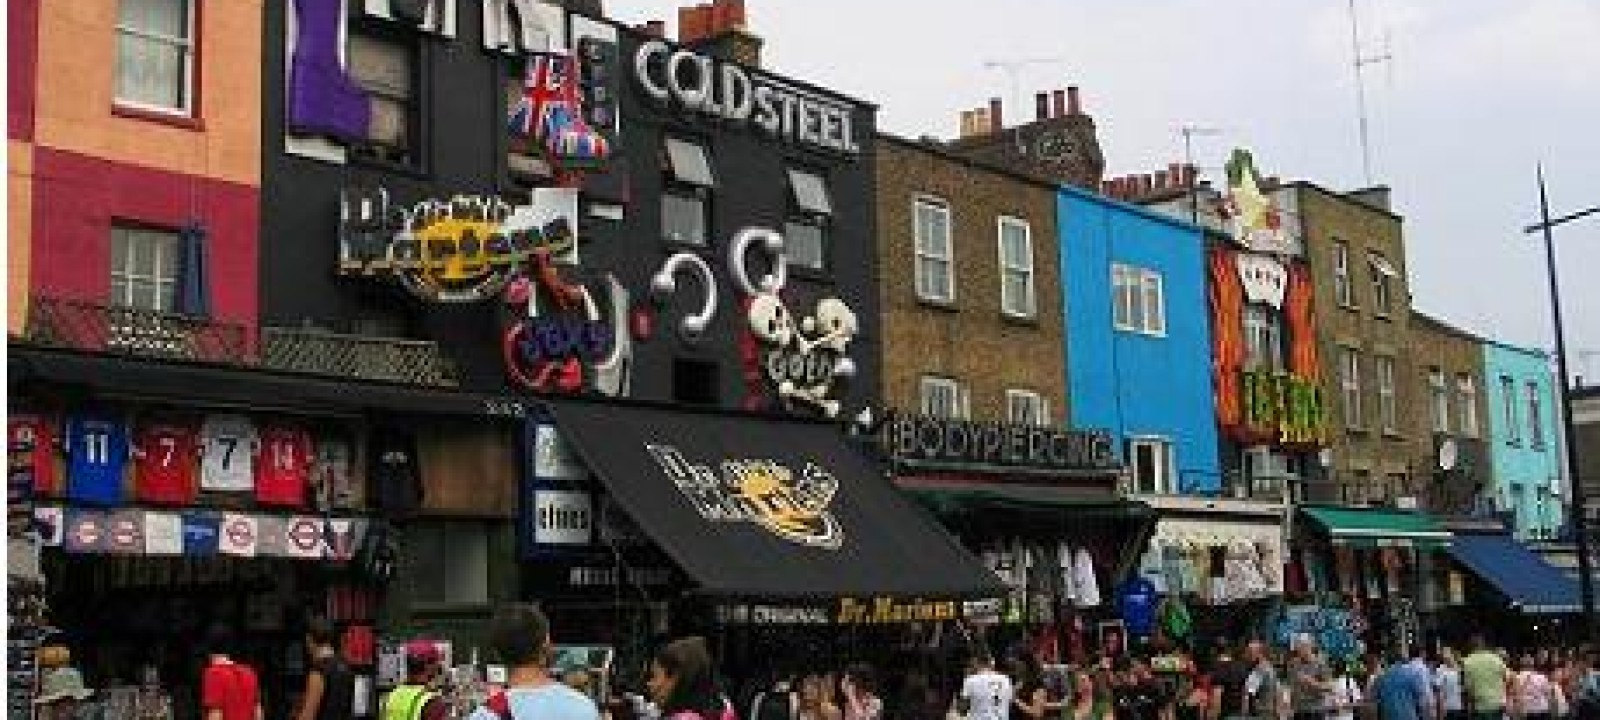 Is camden the new it baby name anglophenia bbc america for The camden